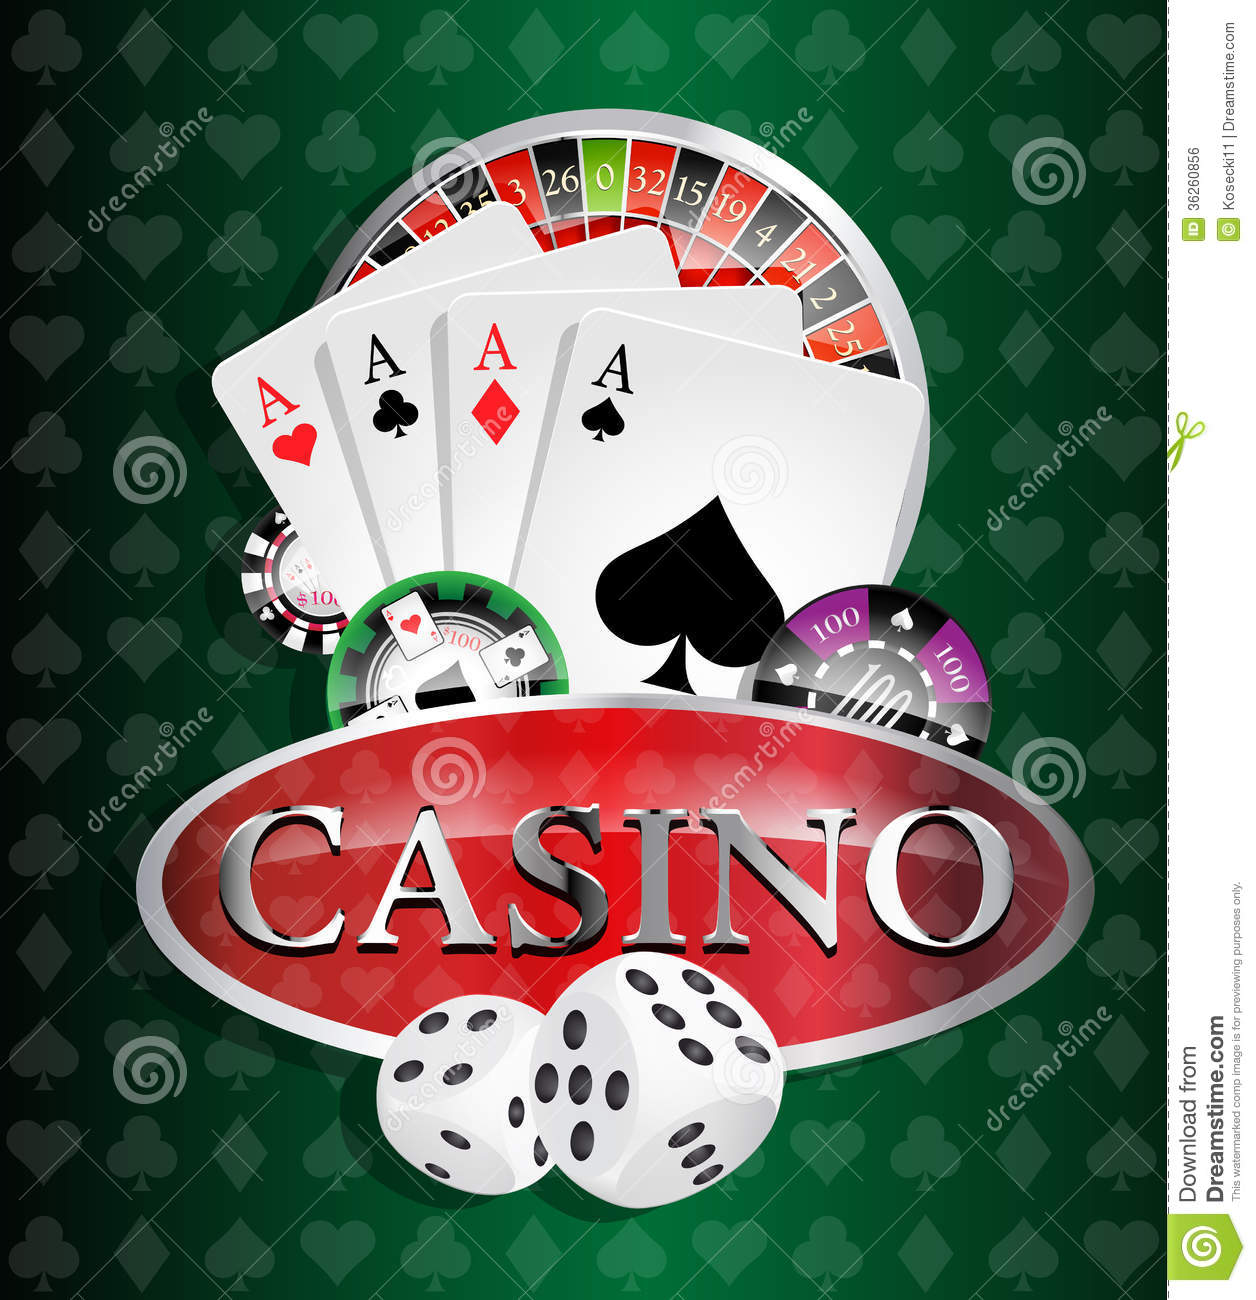 Casino aight bet download